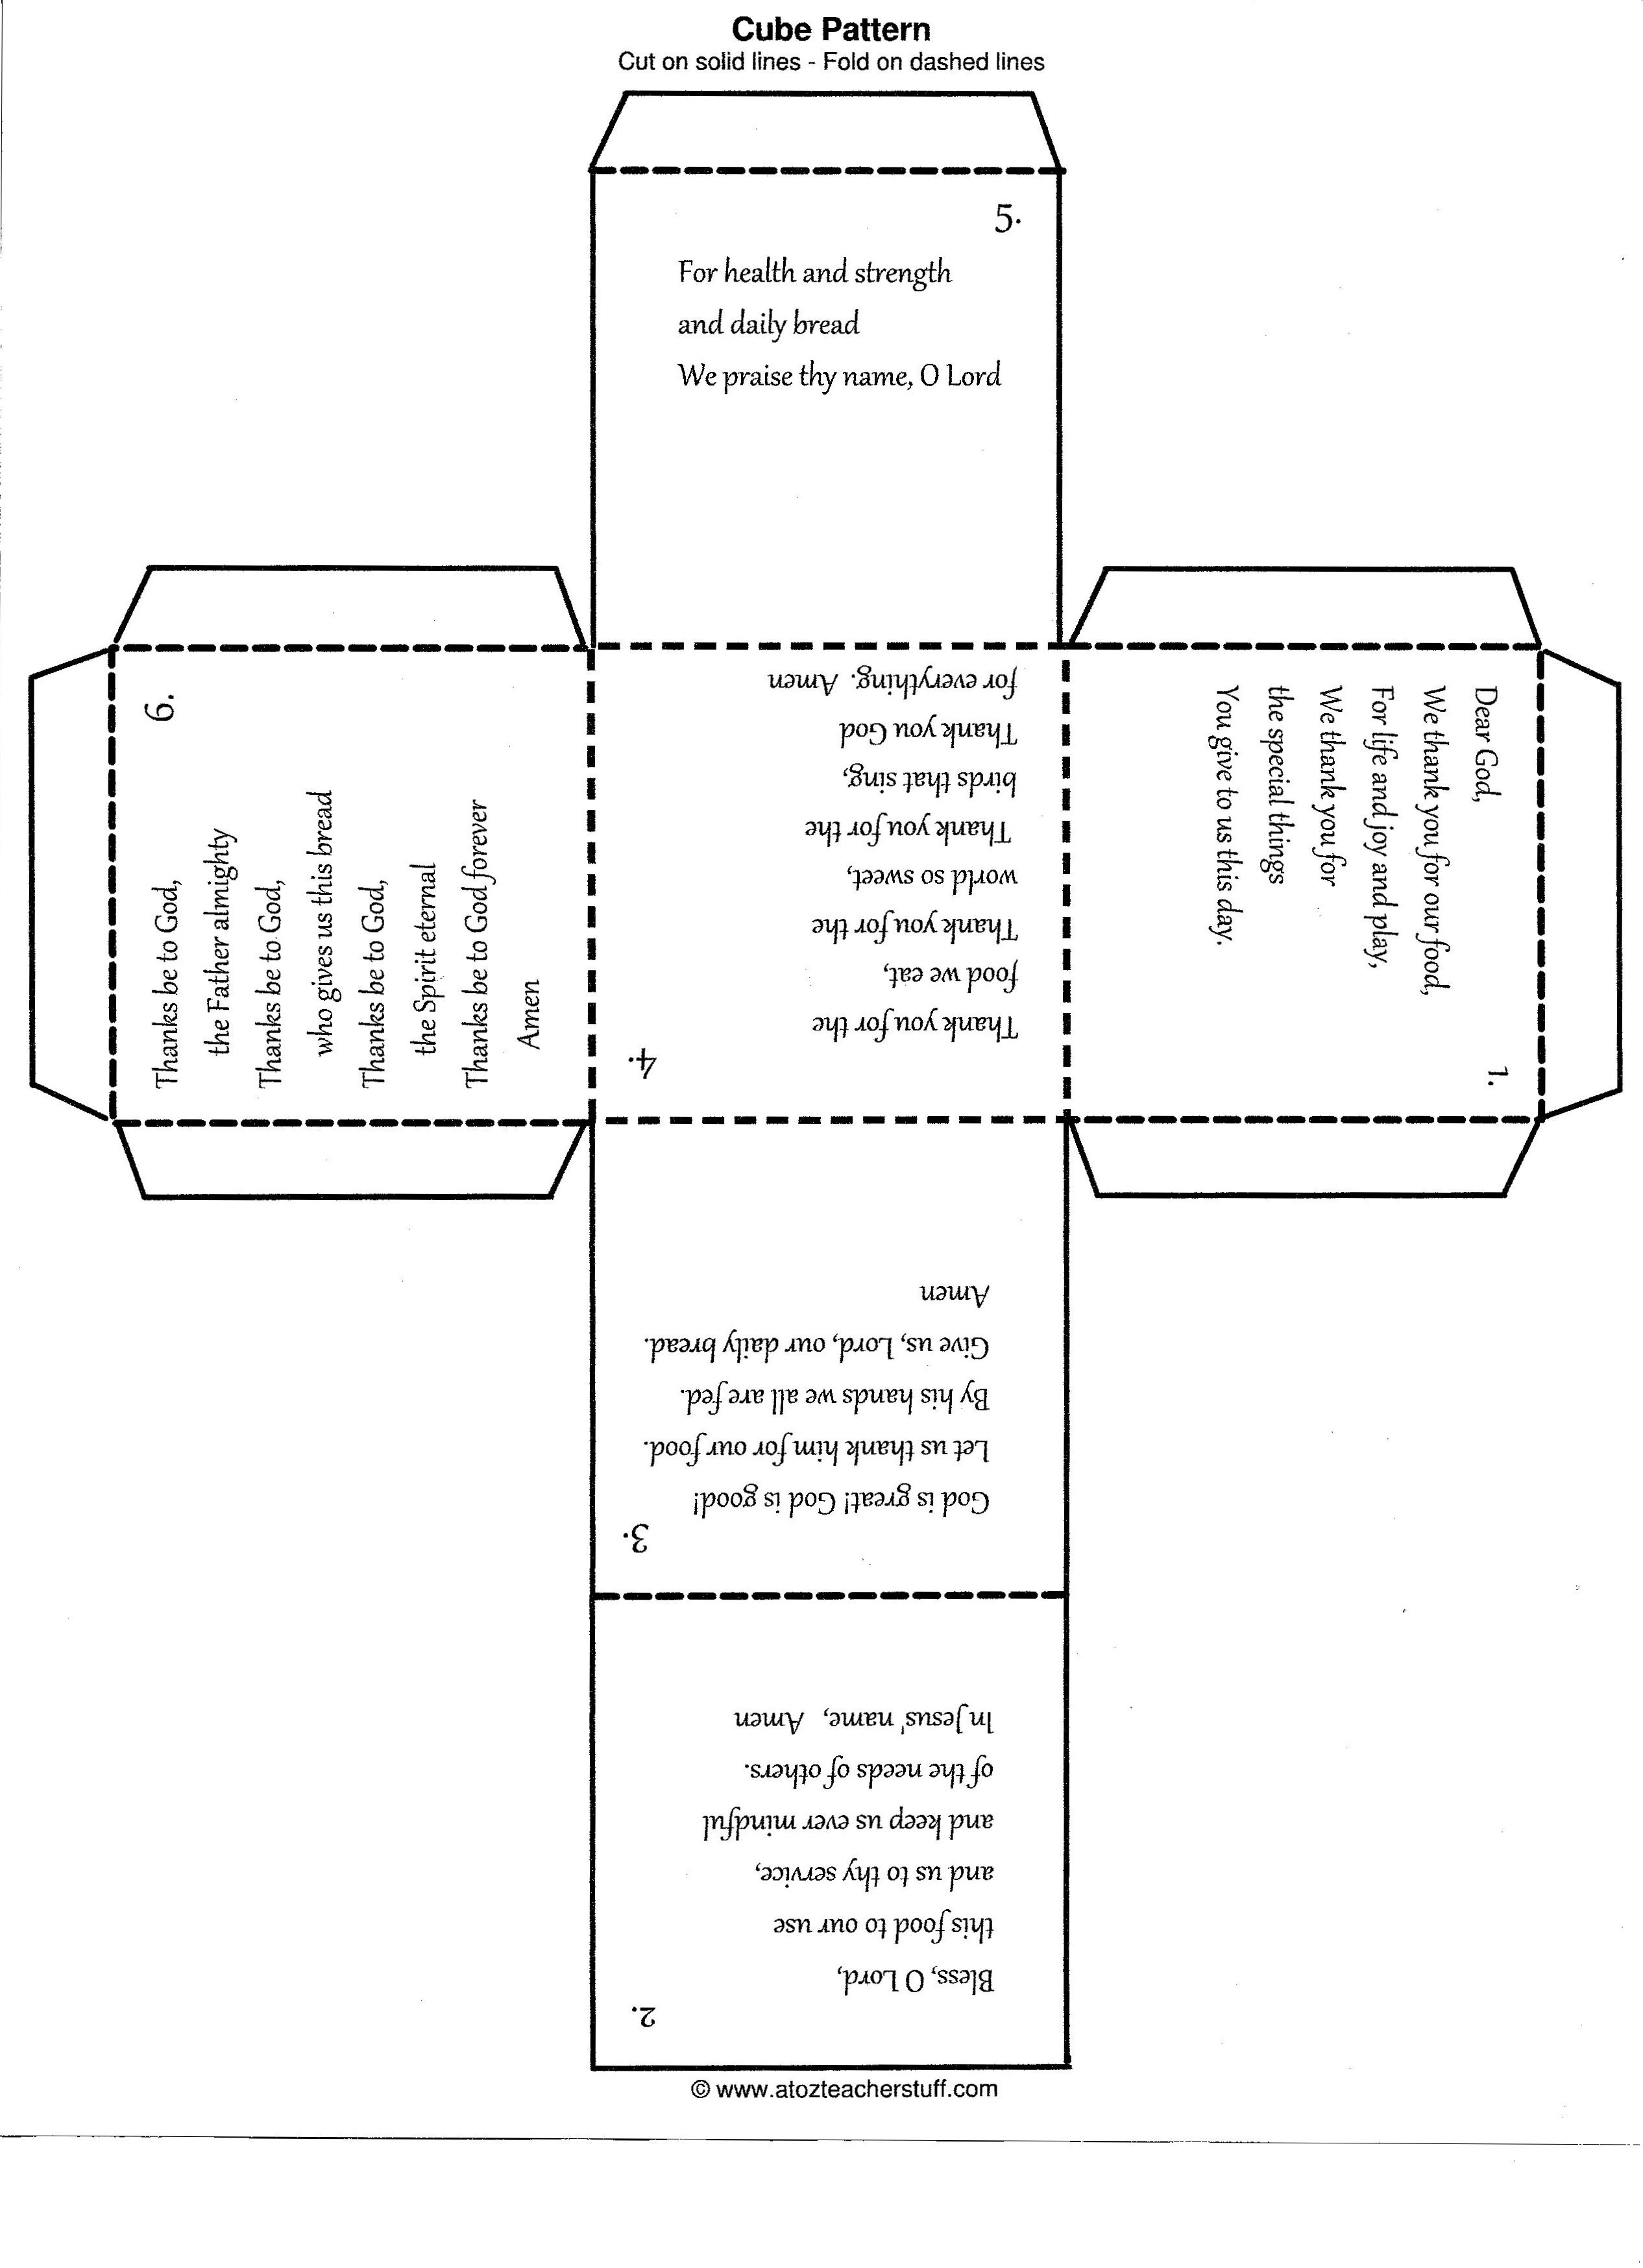 The Pattern For The Prayer Cube